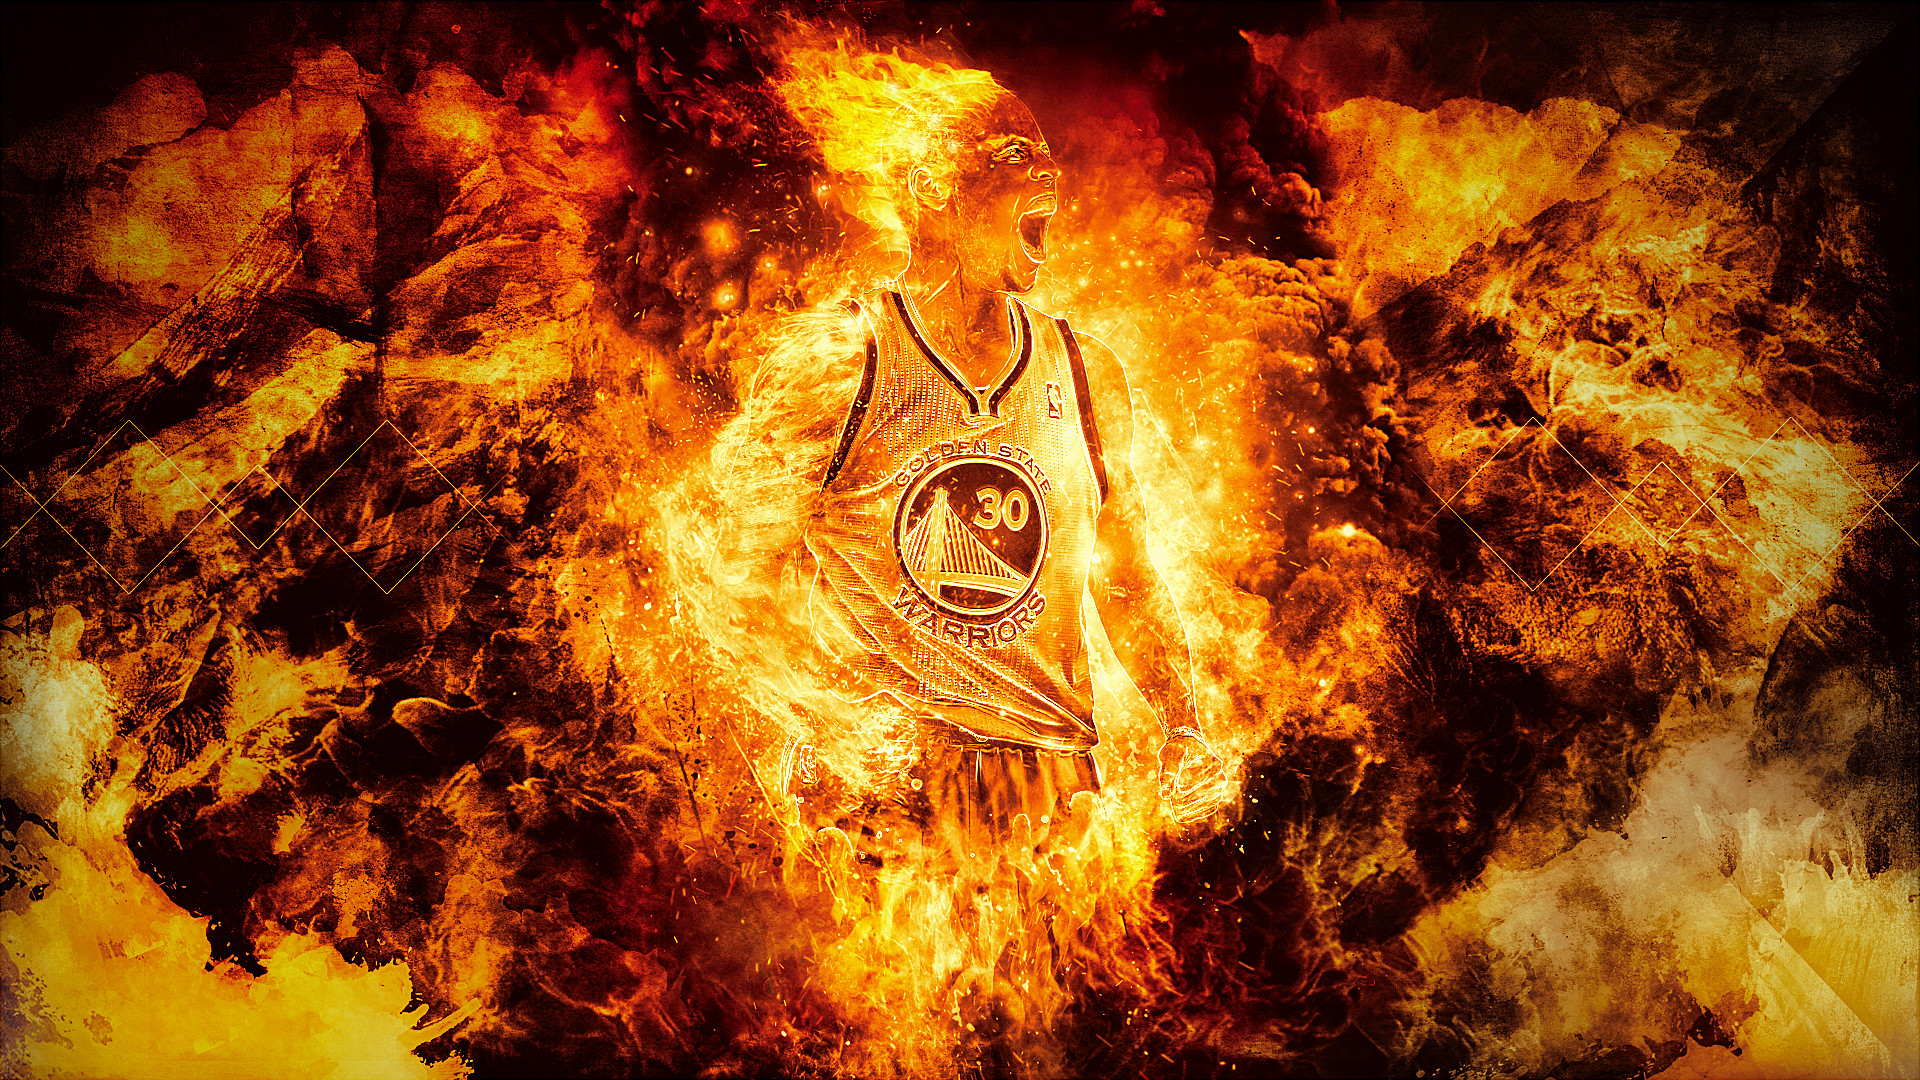 Stephen Curry Fire Wallpaper Wallpapertag